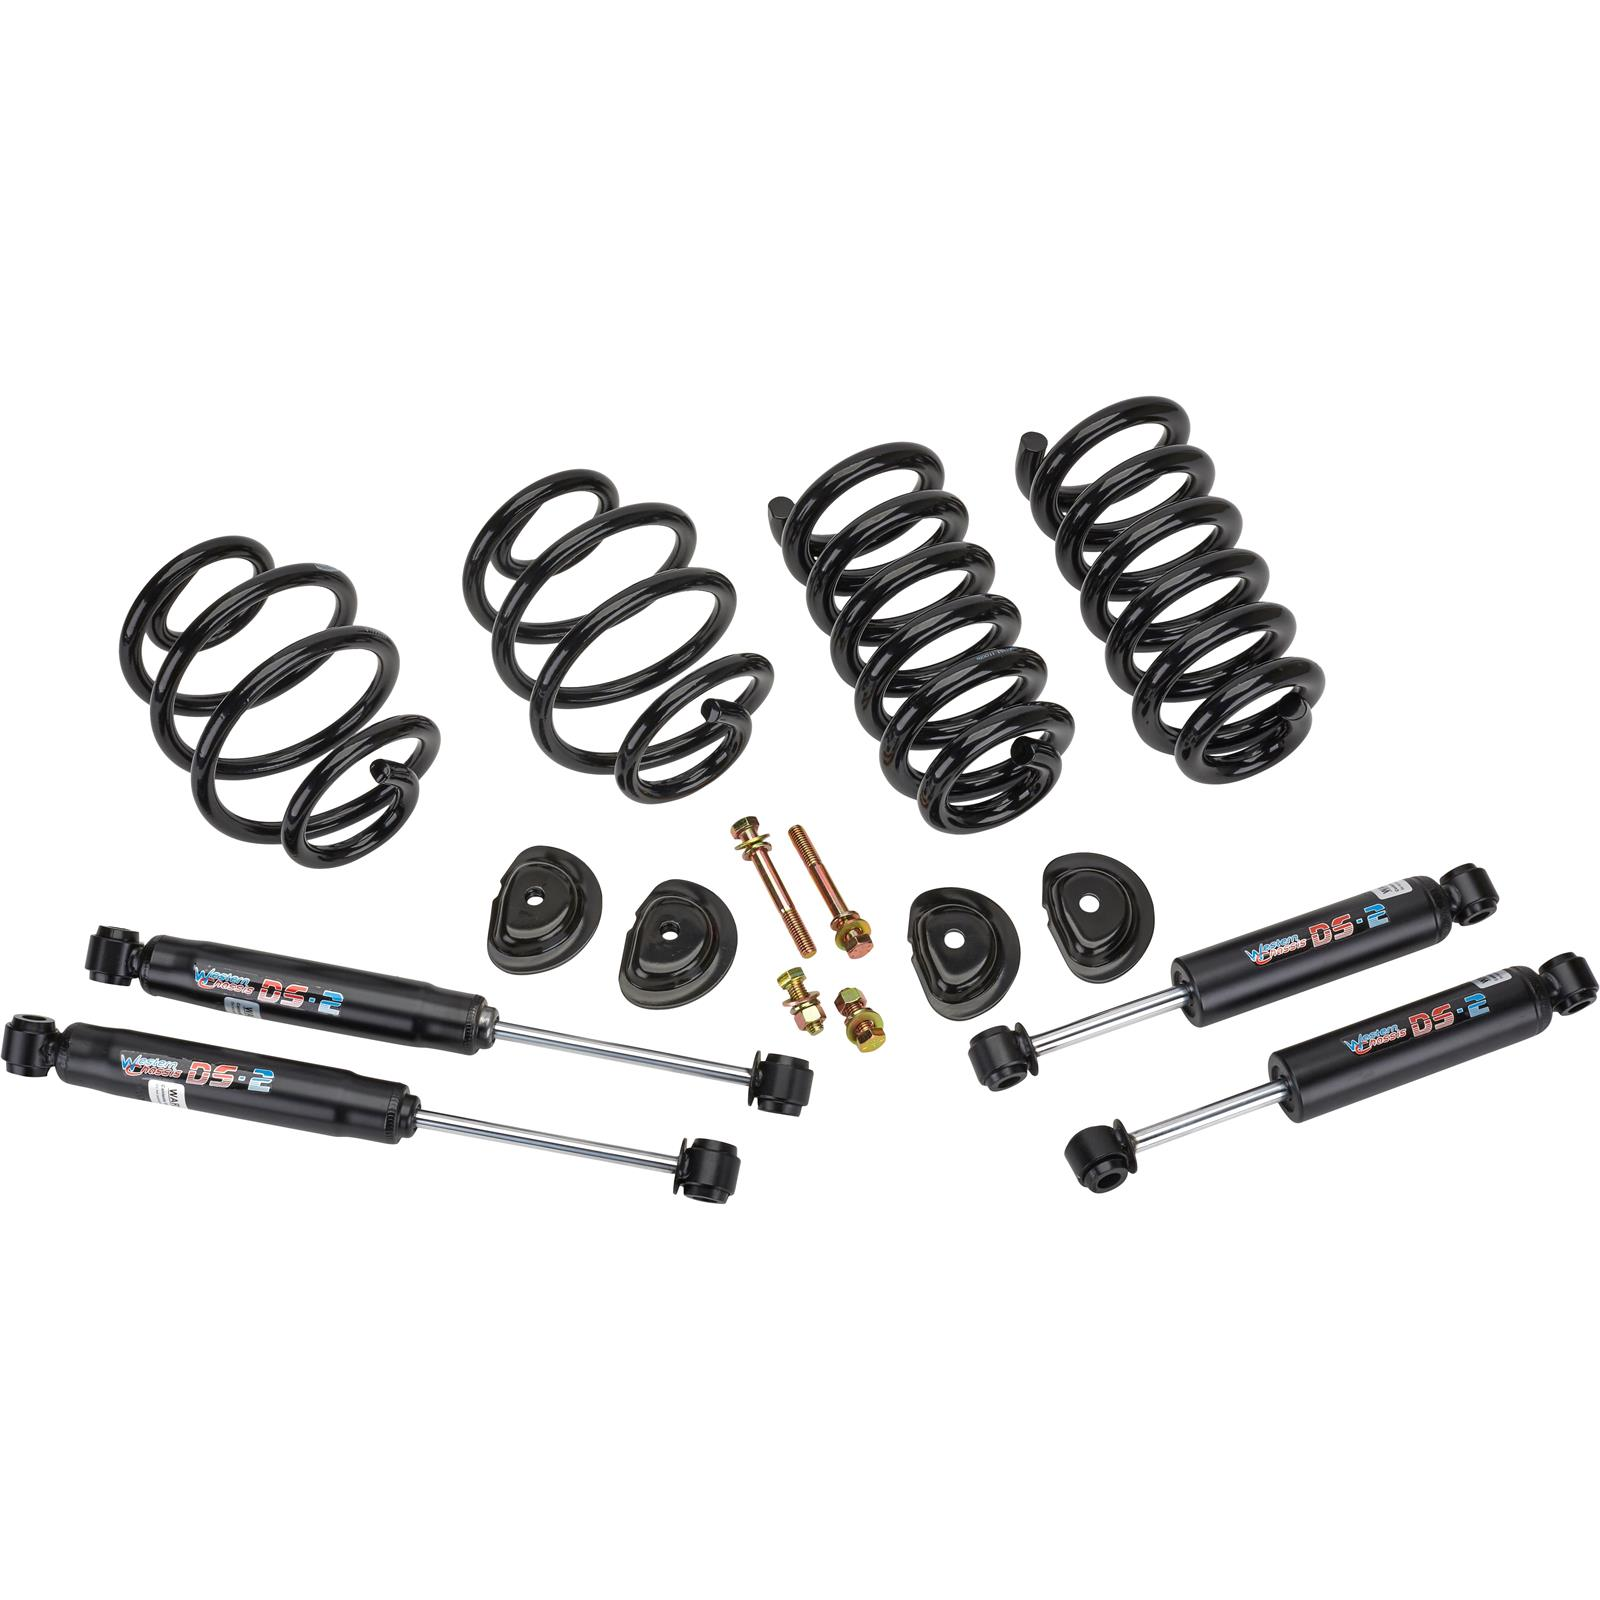 63-72 CHEVY C10 TRUCK FRONT STOCK SHOCK AND COIL SPRING KIT W// SHOCK SUPPORT